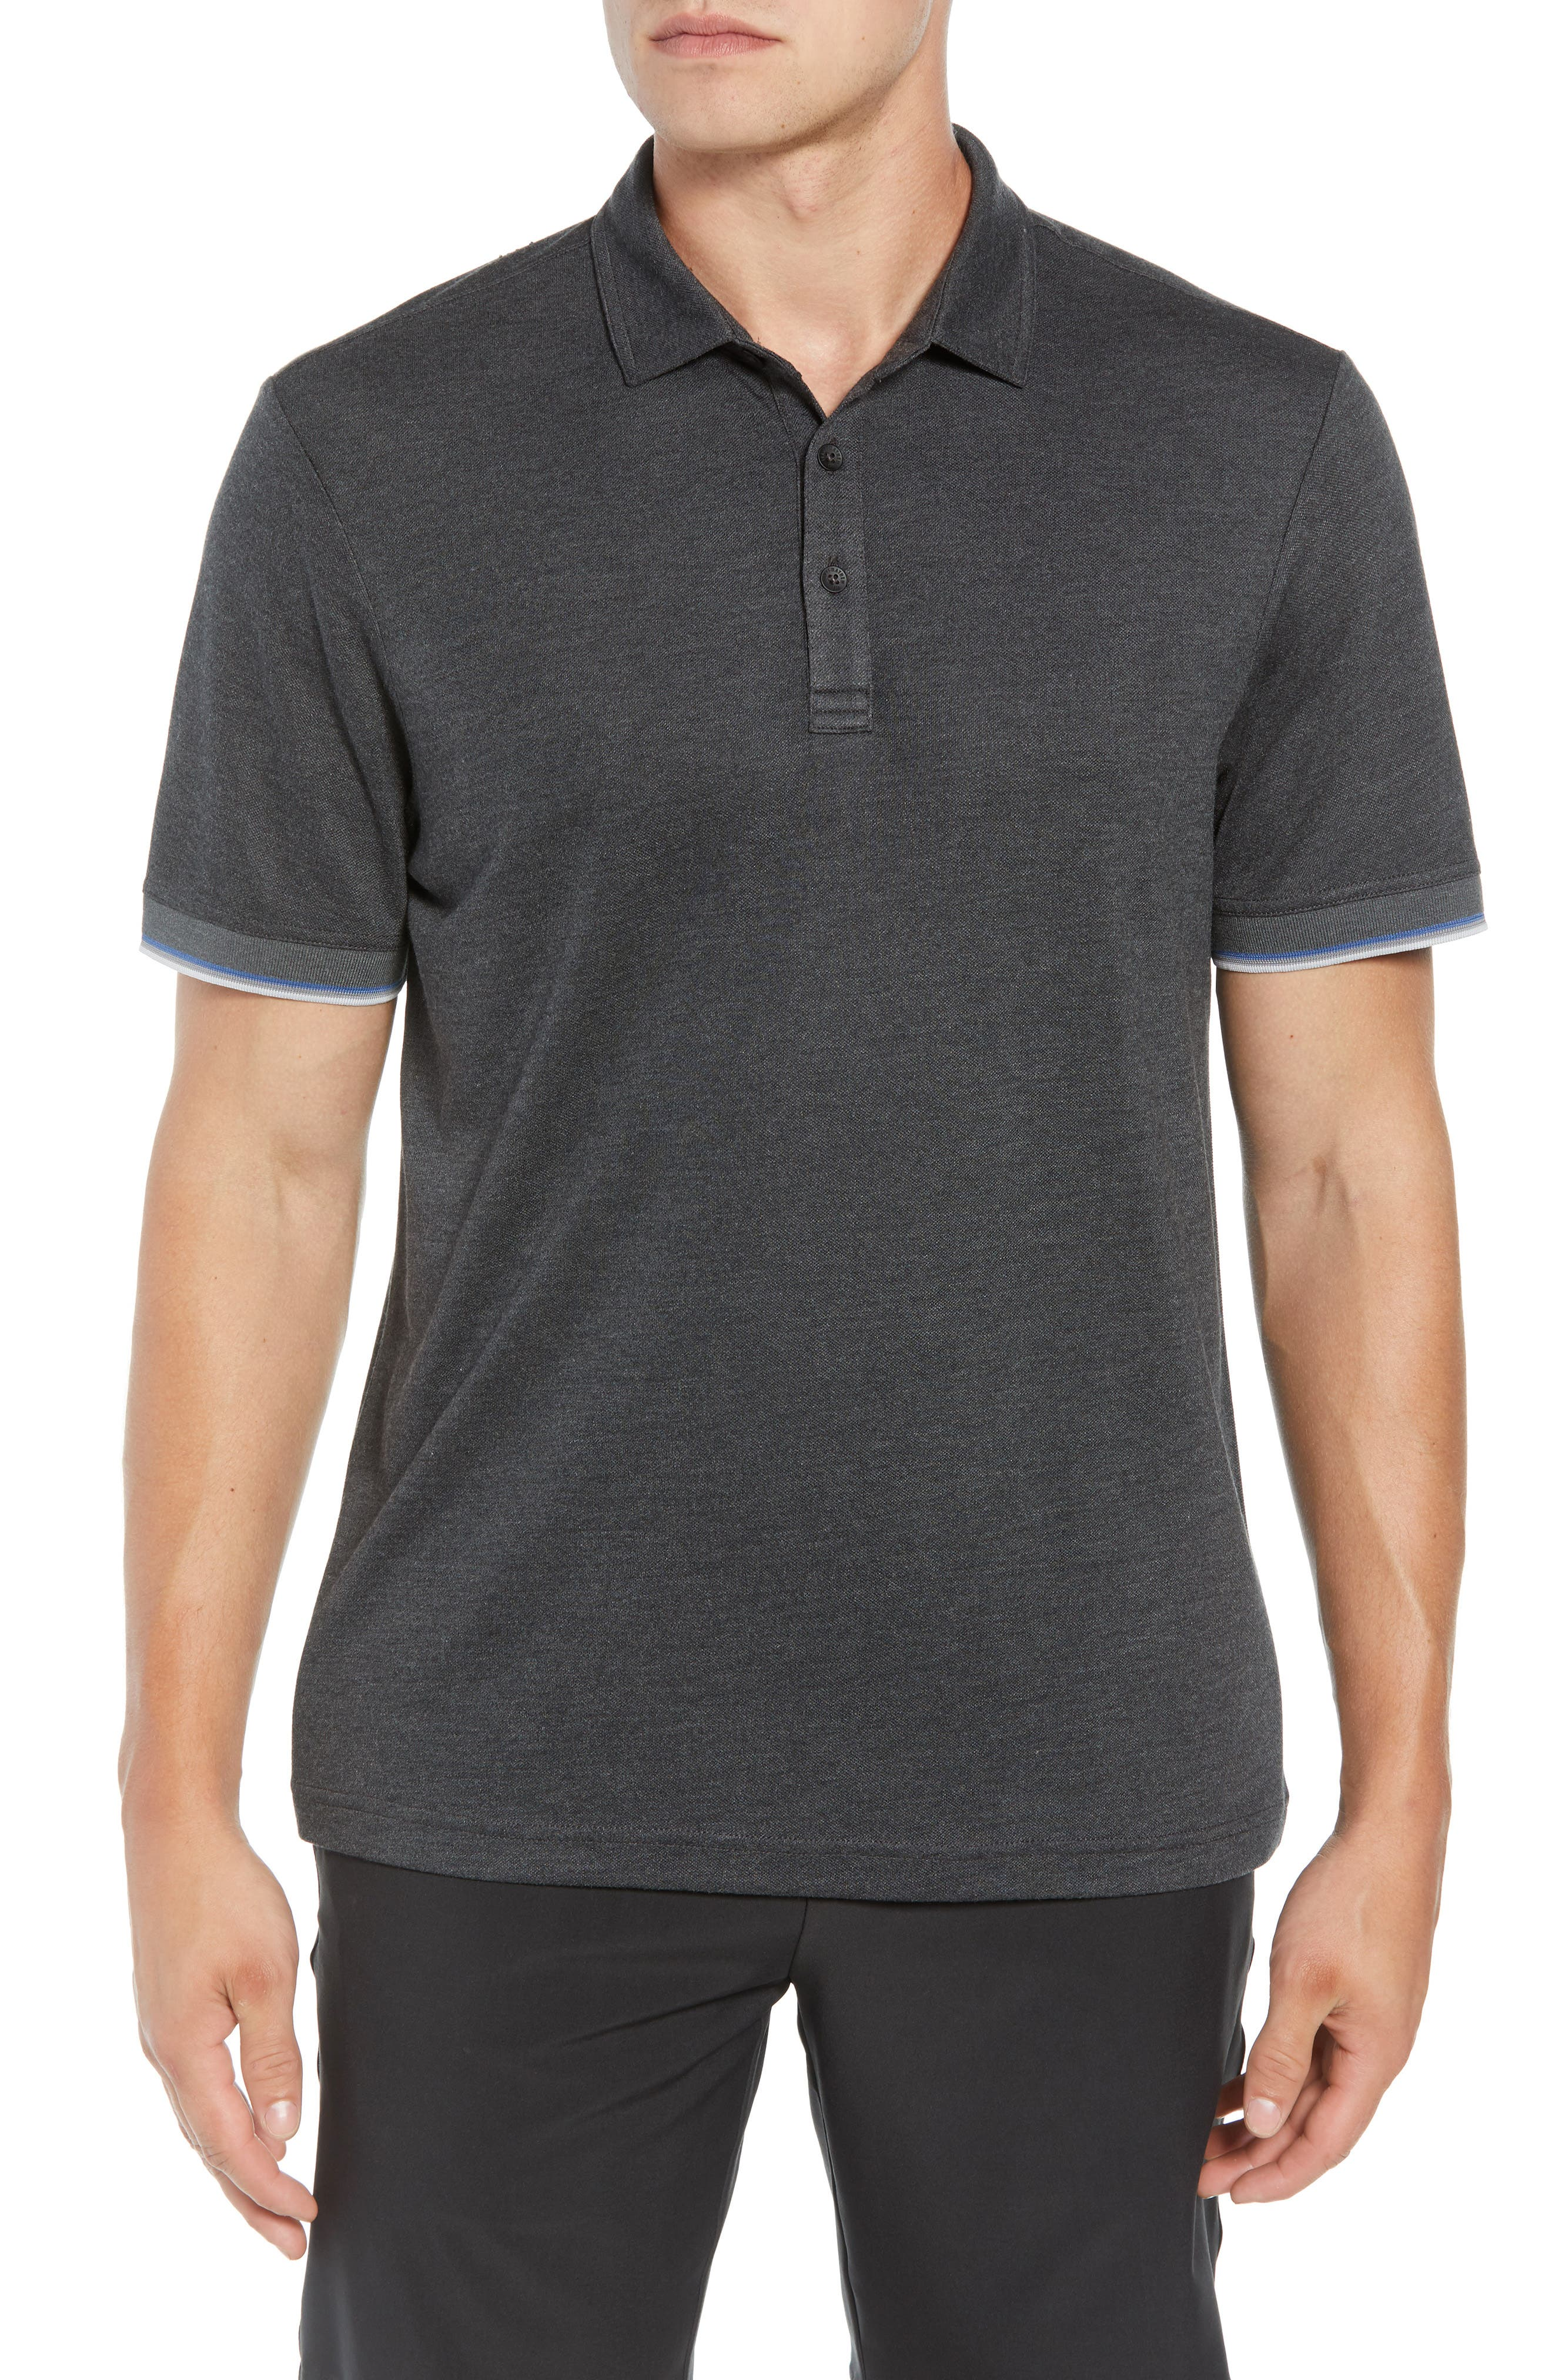 Mag Bay Polo,                             Main thumbnail 1, color,                             BLACK/ GREY PINSTRIPE